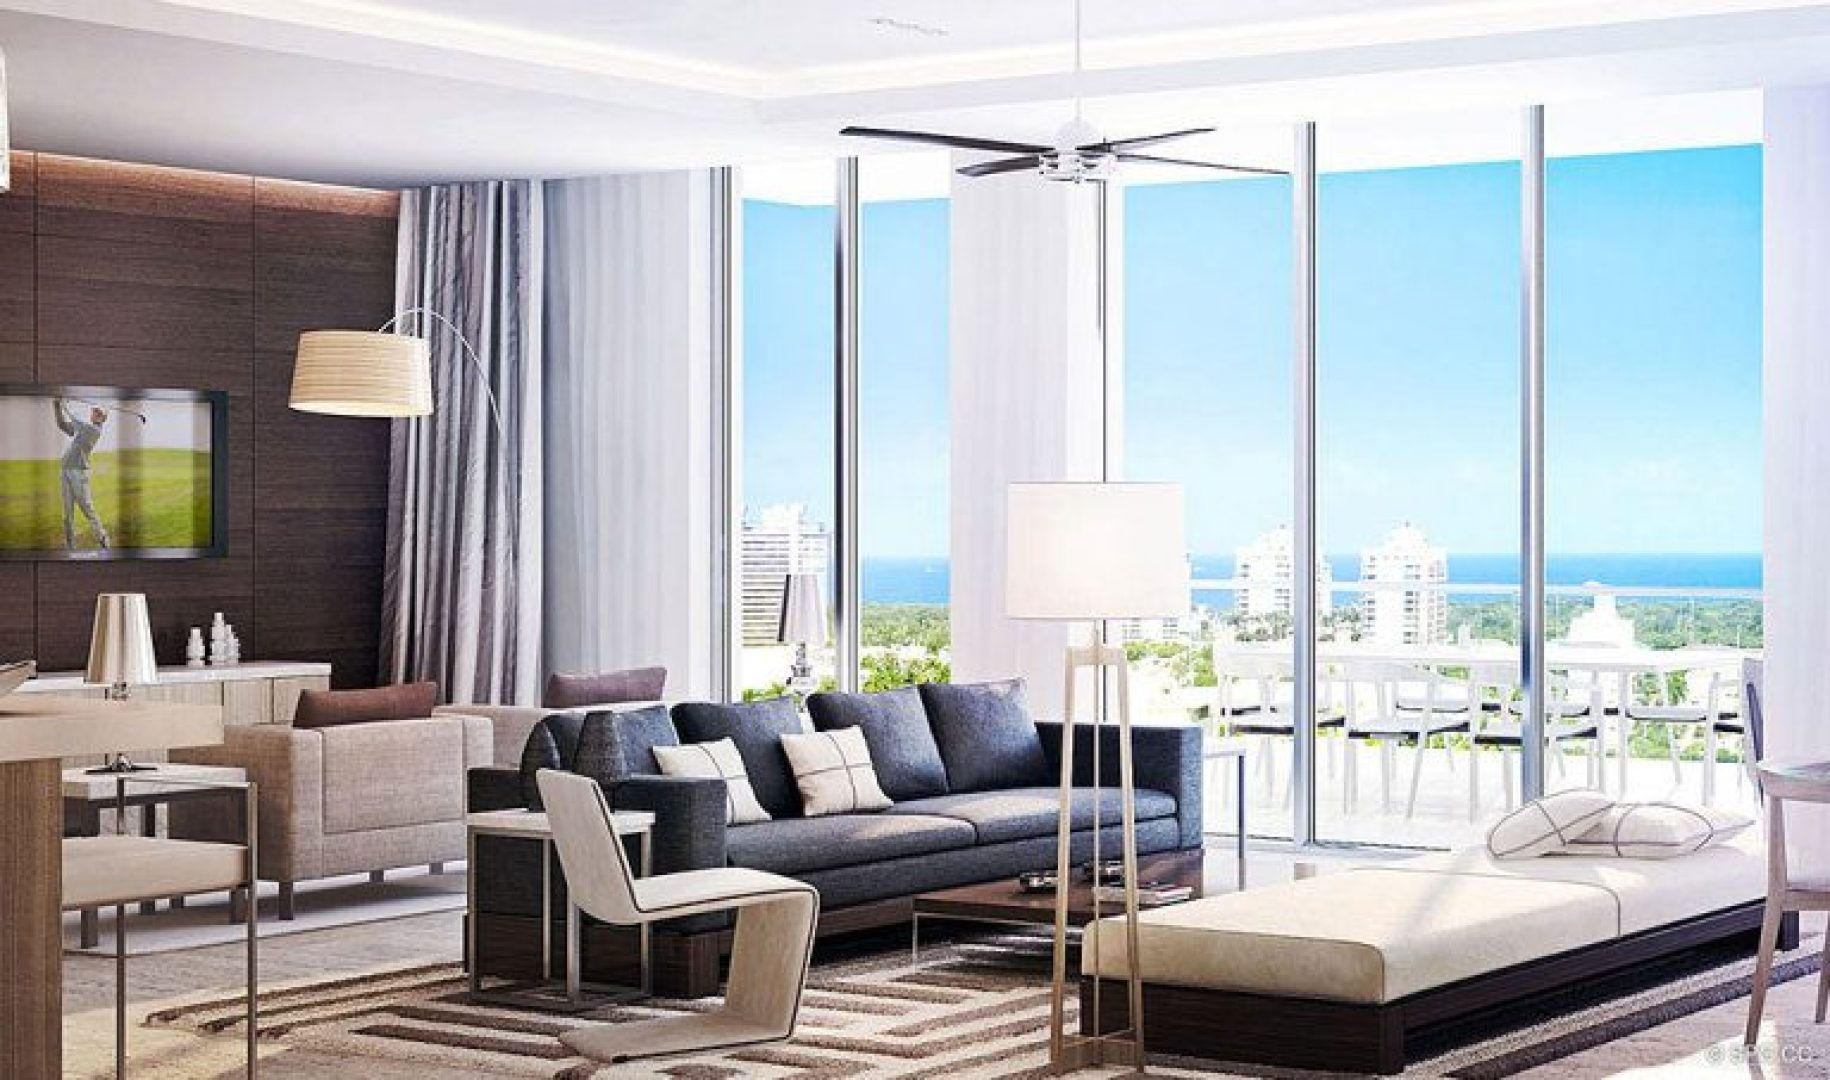 Floor to Ceiling Glass at Riva, Luxury Waterfront Condos in Fort Lauderdale, Florida 33304.